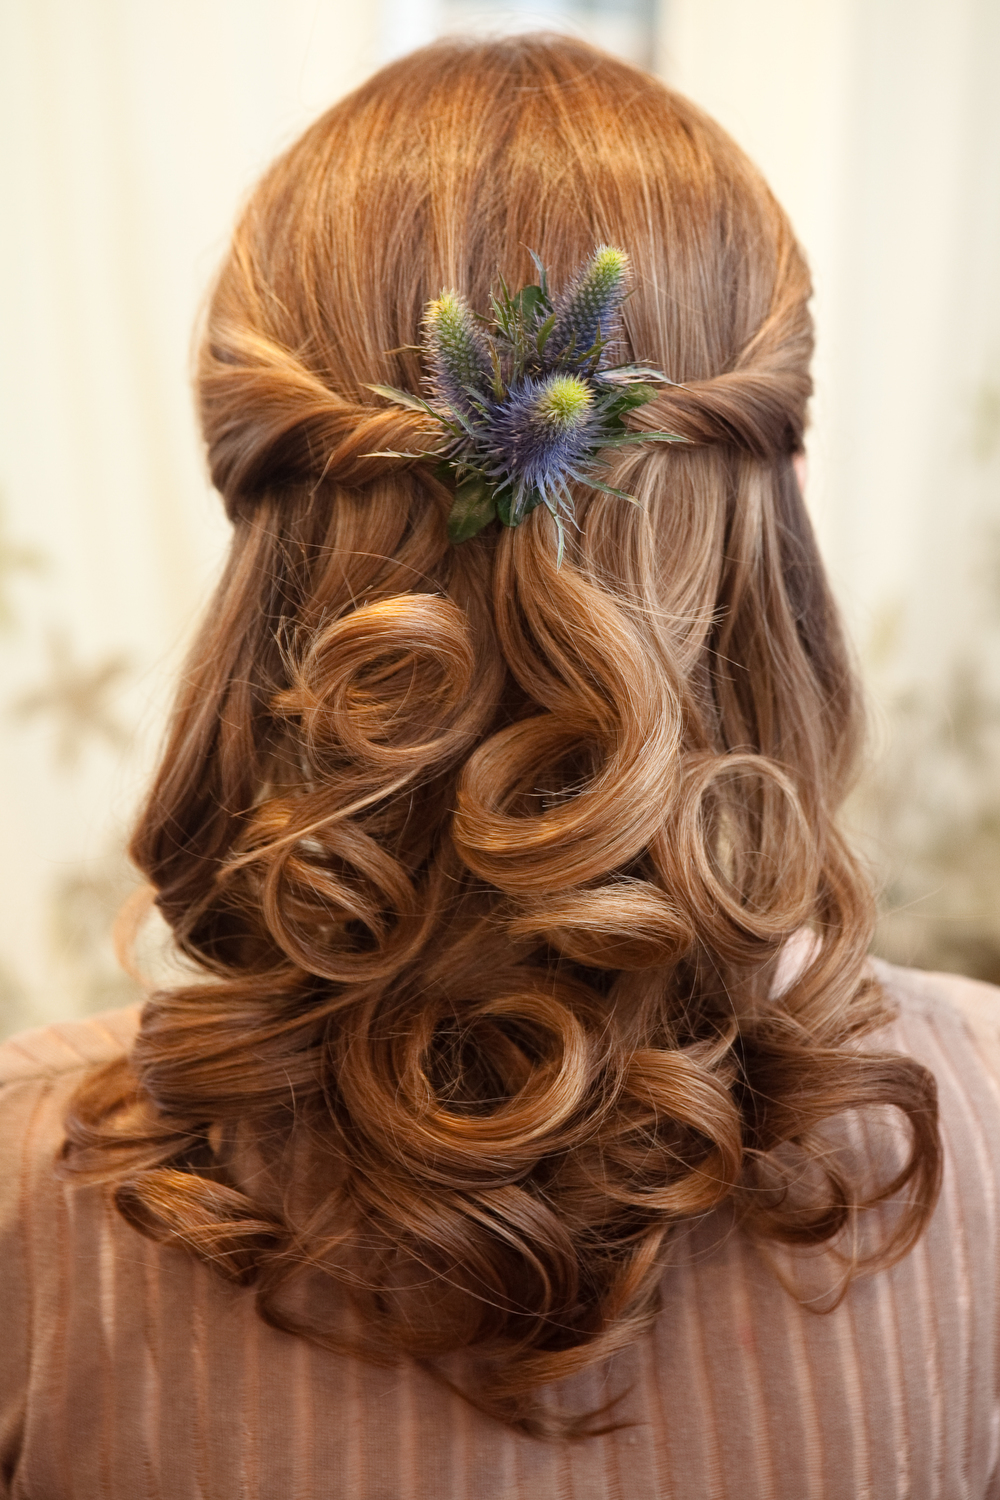 Wedding hairstyles for long hair with birdcage veil